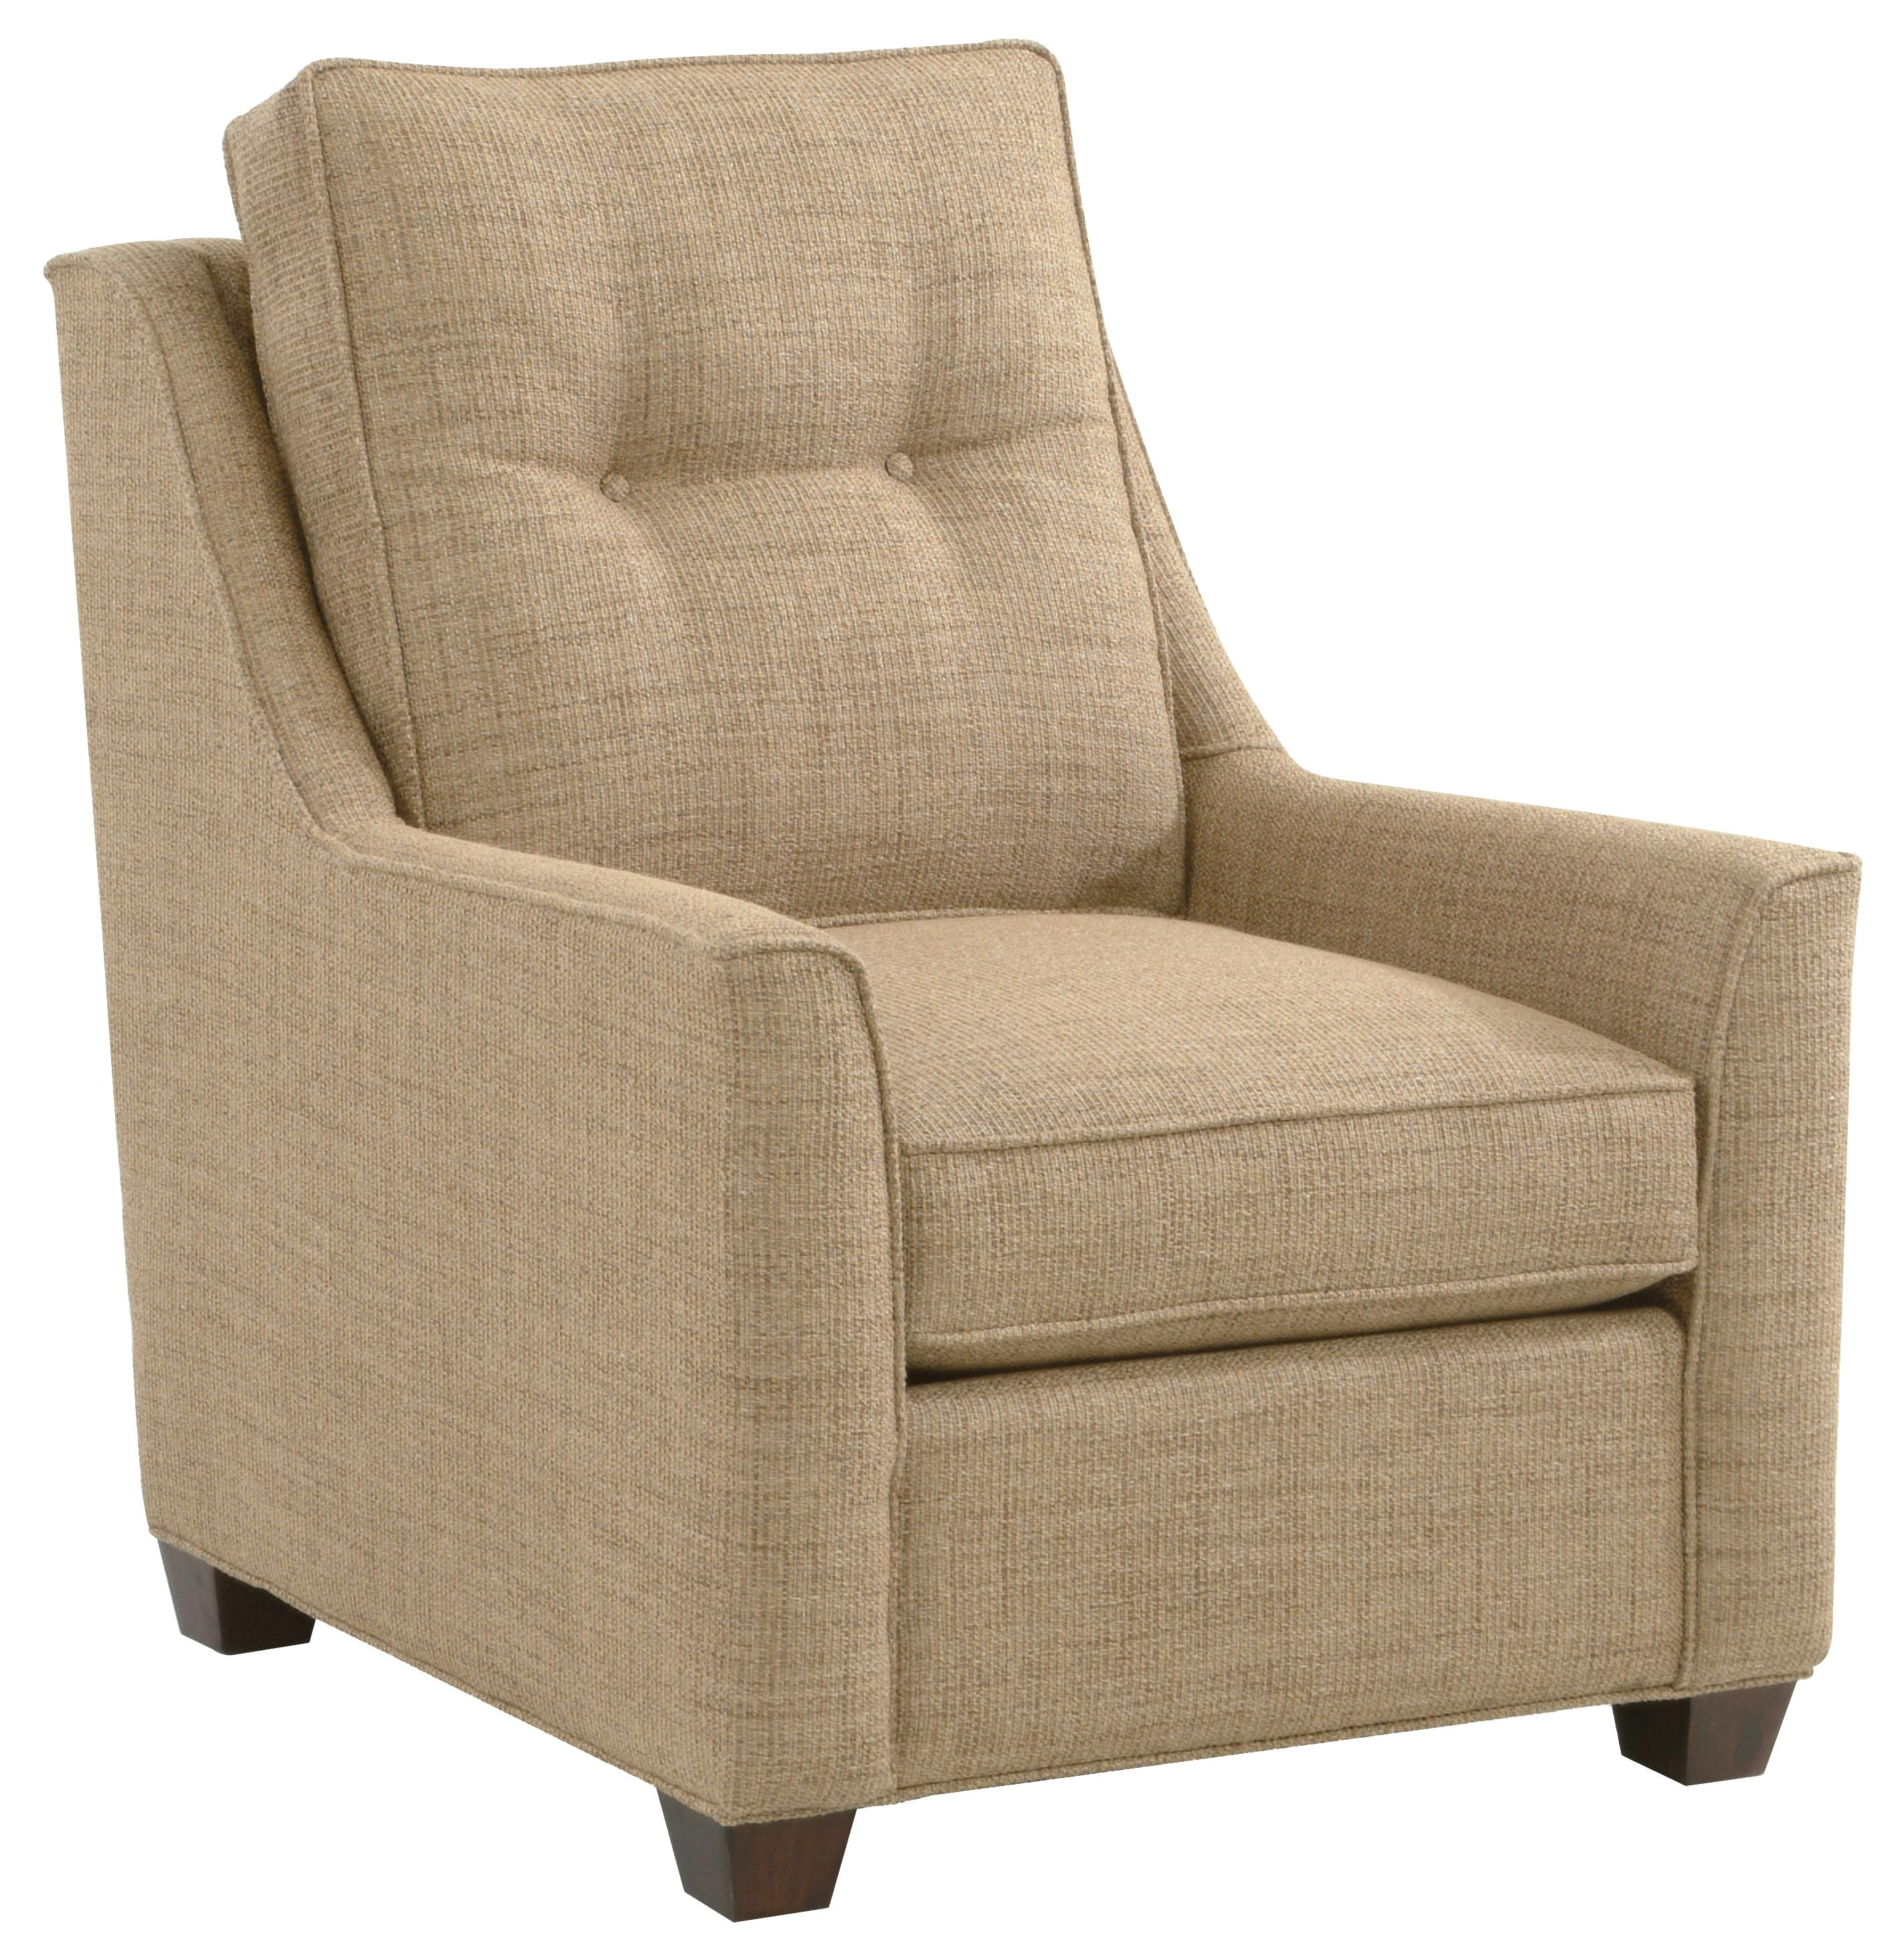 745  Upholstered Accent Chair by Braxton Culler at Alison Craig Home Furnishings